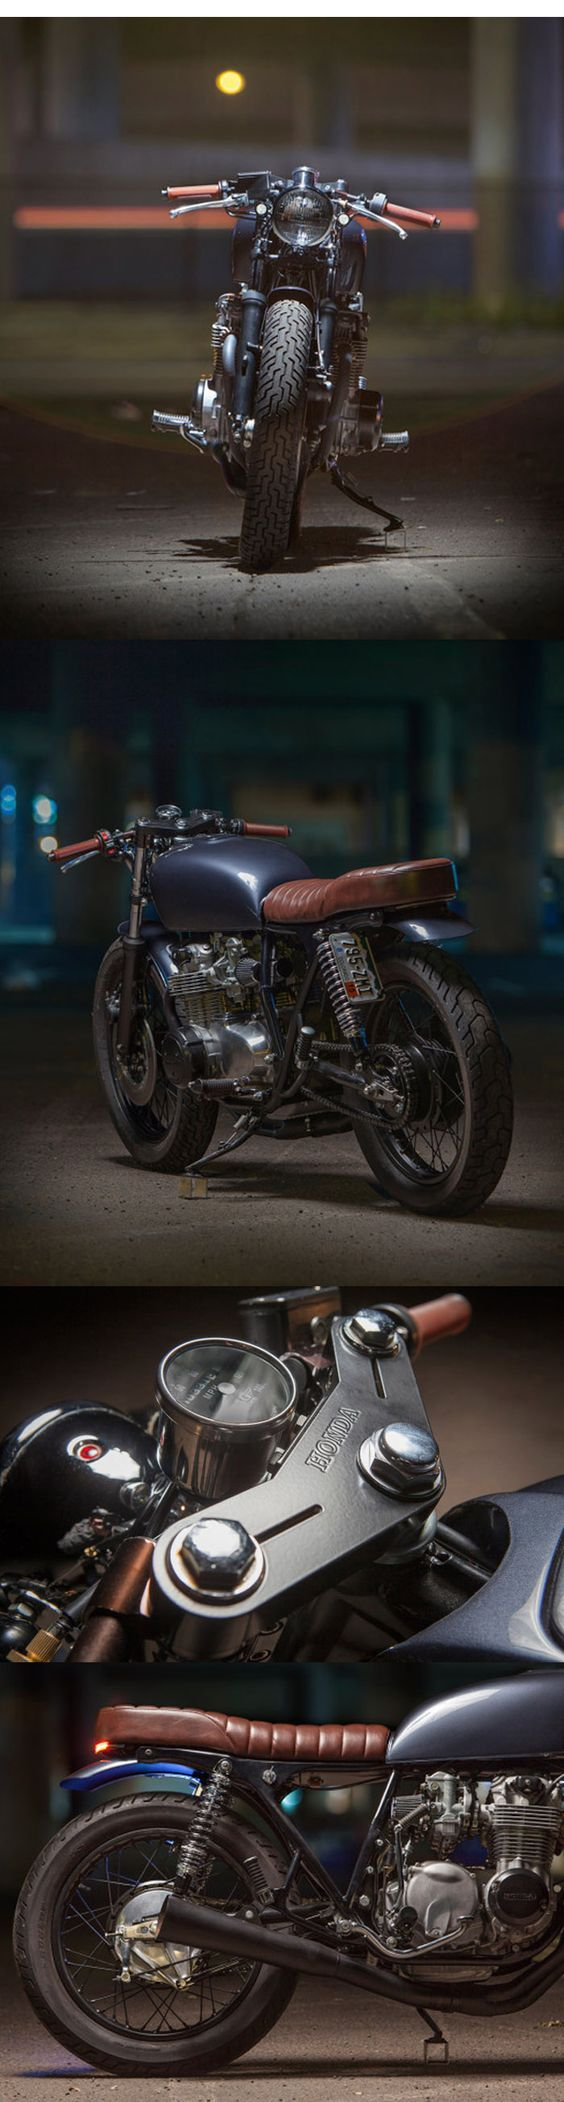 Backyard build: Dave Lehl's Honda CB550 motofanatics.blog...